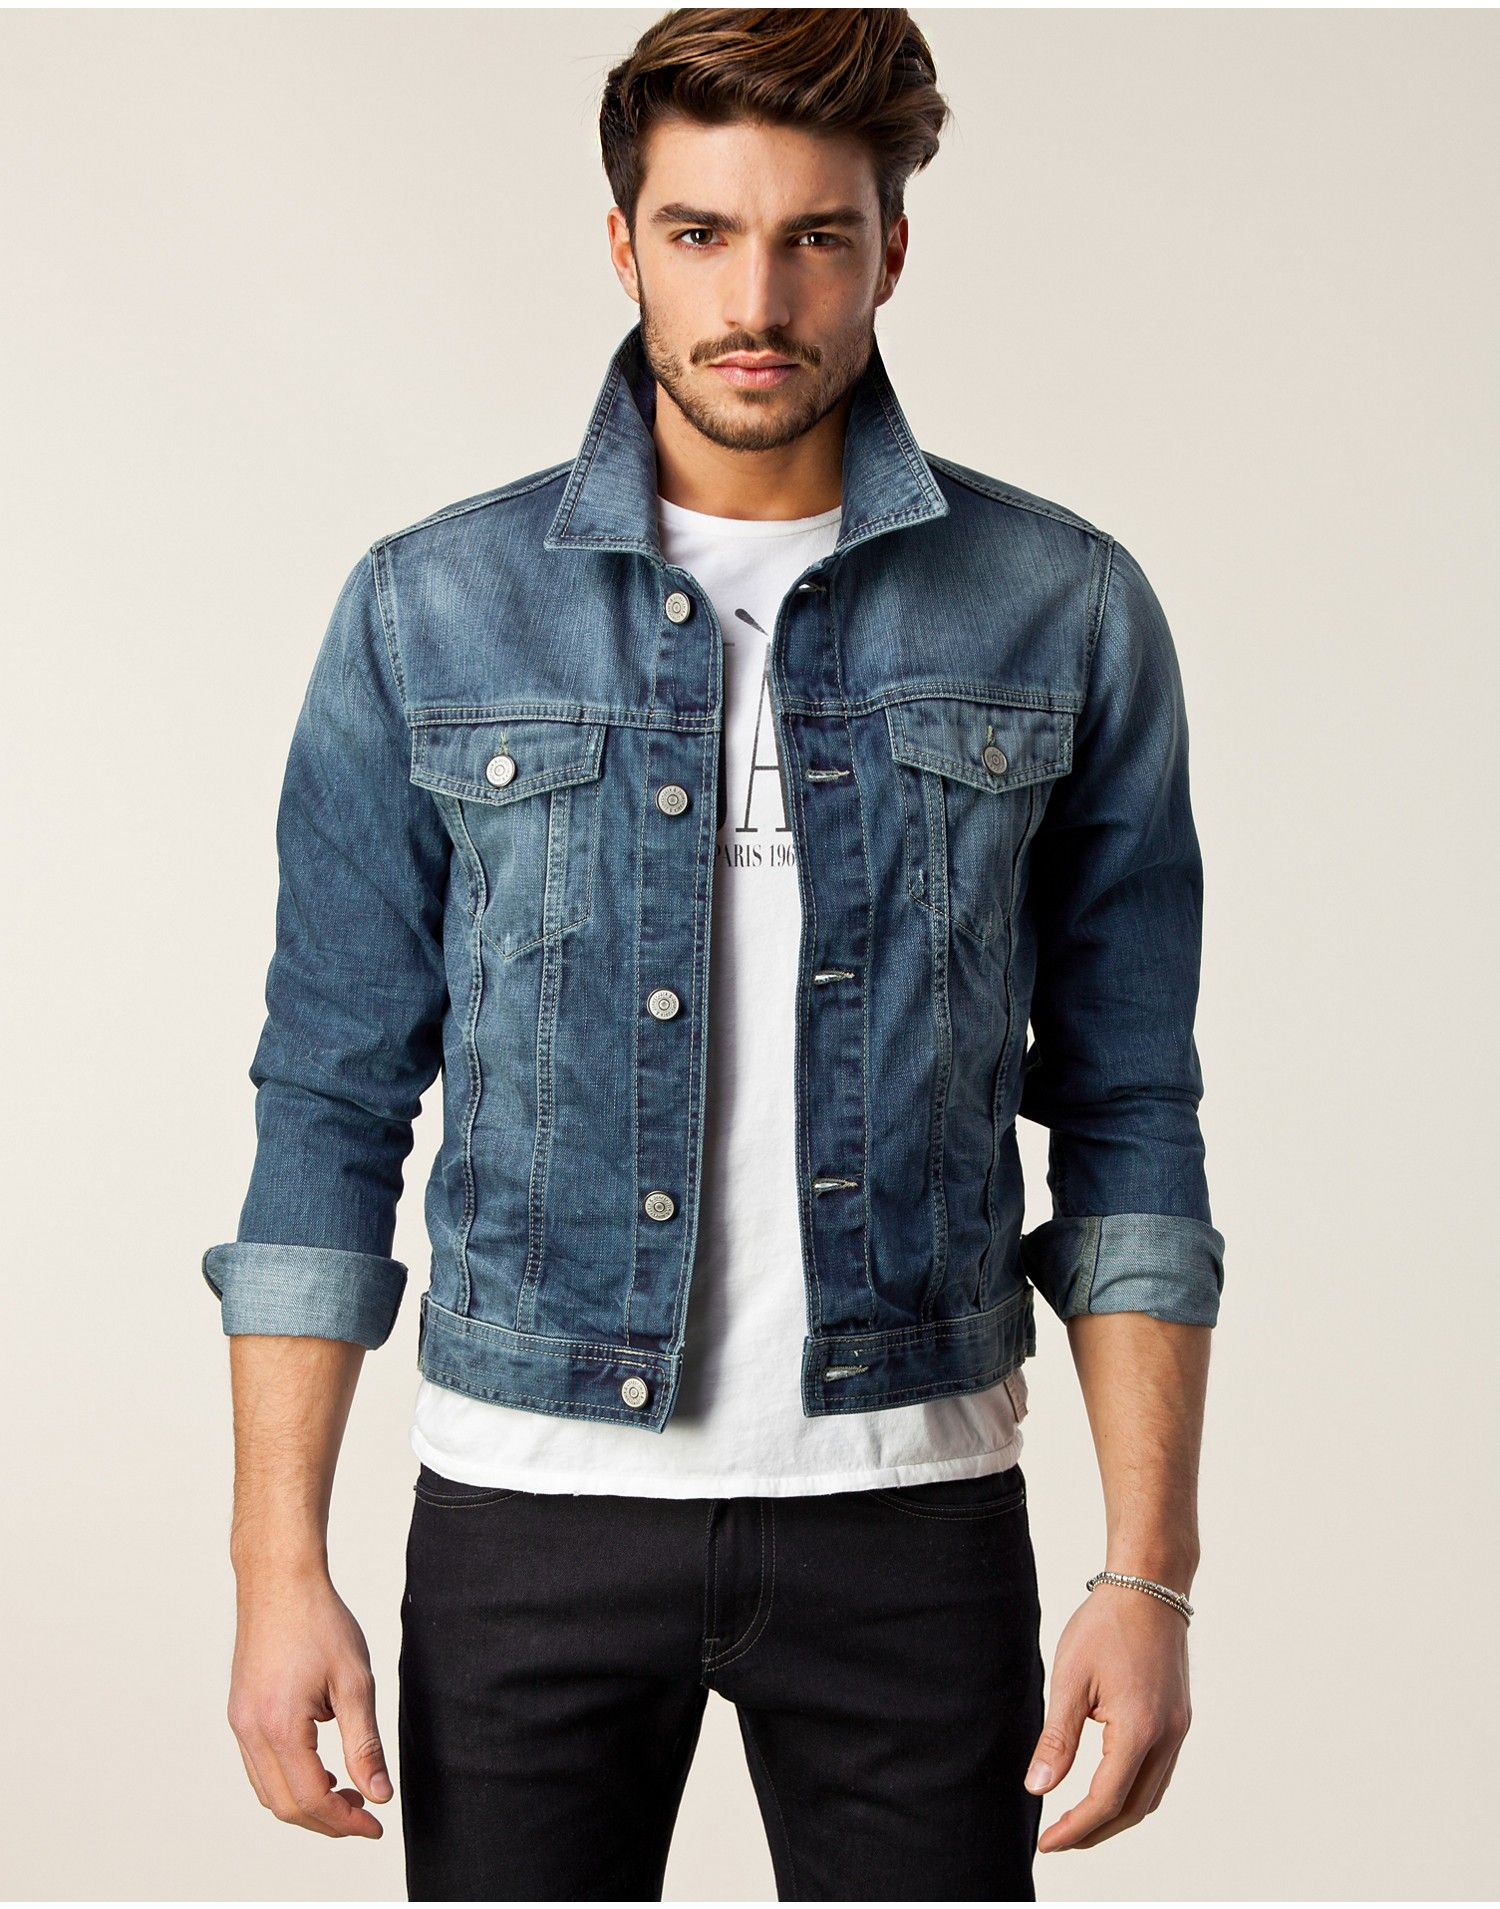 denim jacket outfit ideas men - Google Search | Denim Jacket Ideas ...